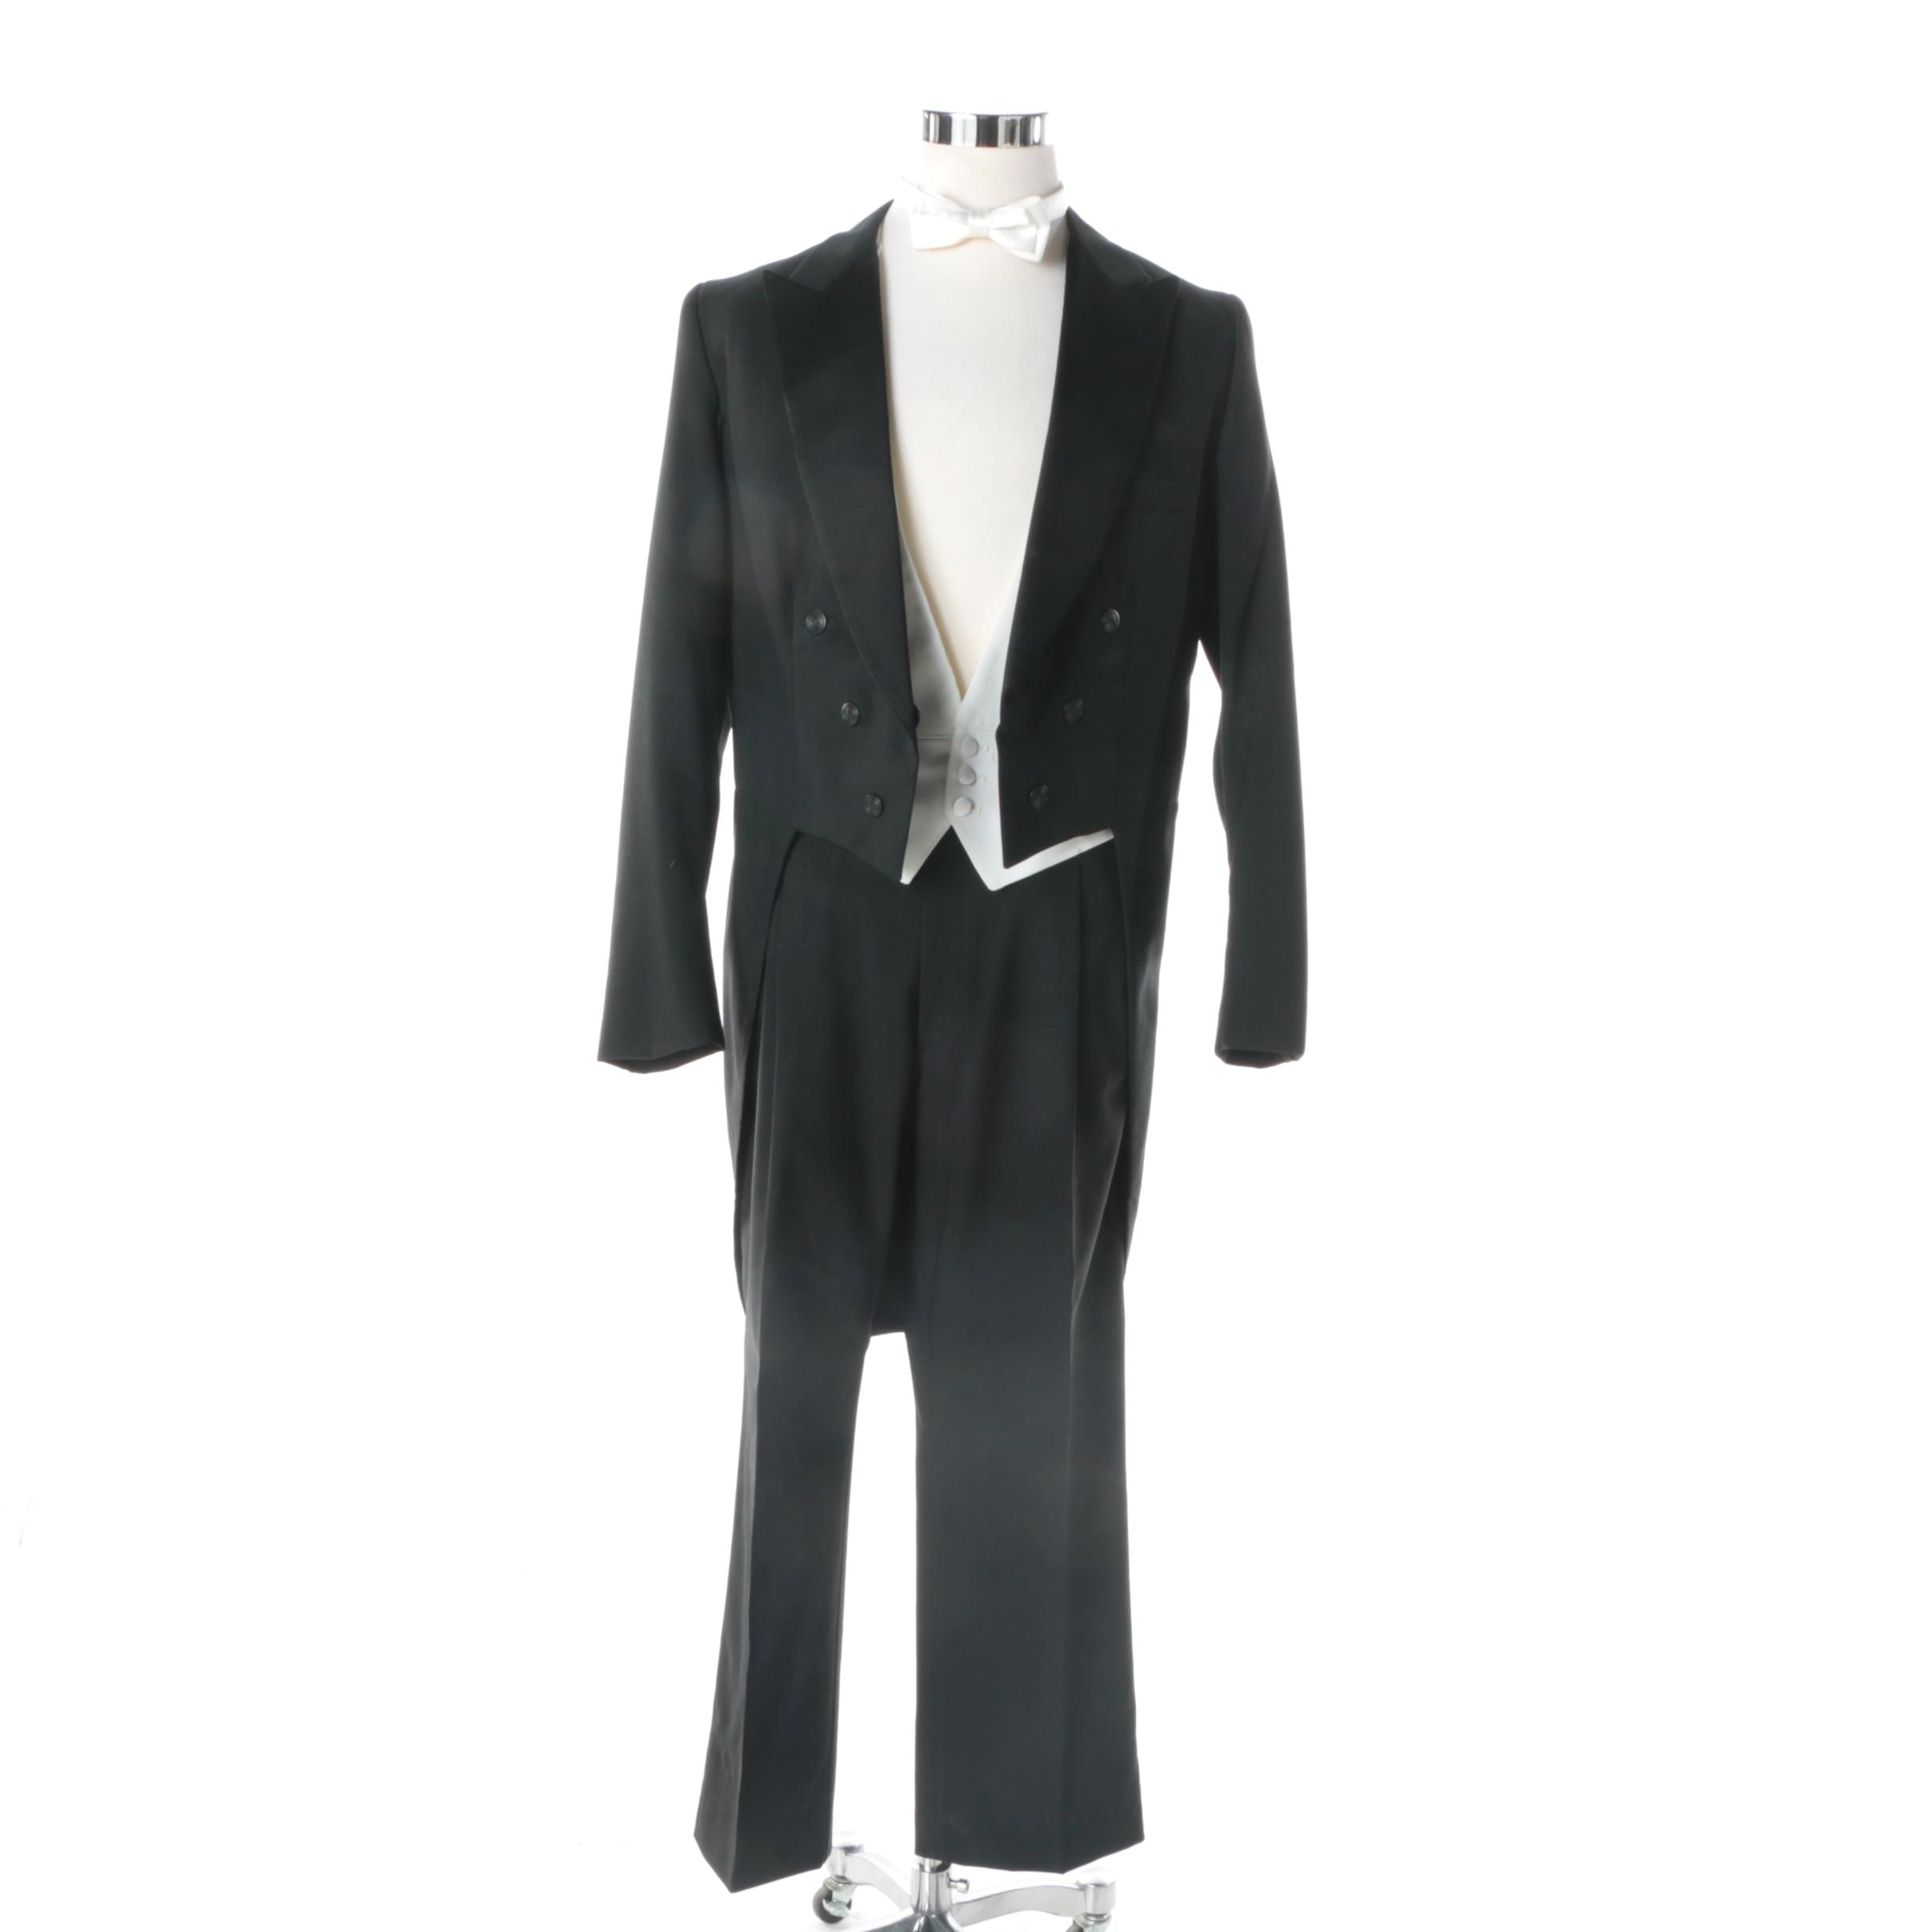 Men's Formal Wear Including Pierre Cardin and Christian Dior